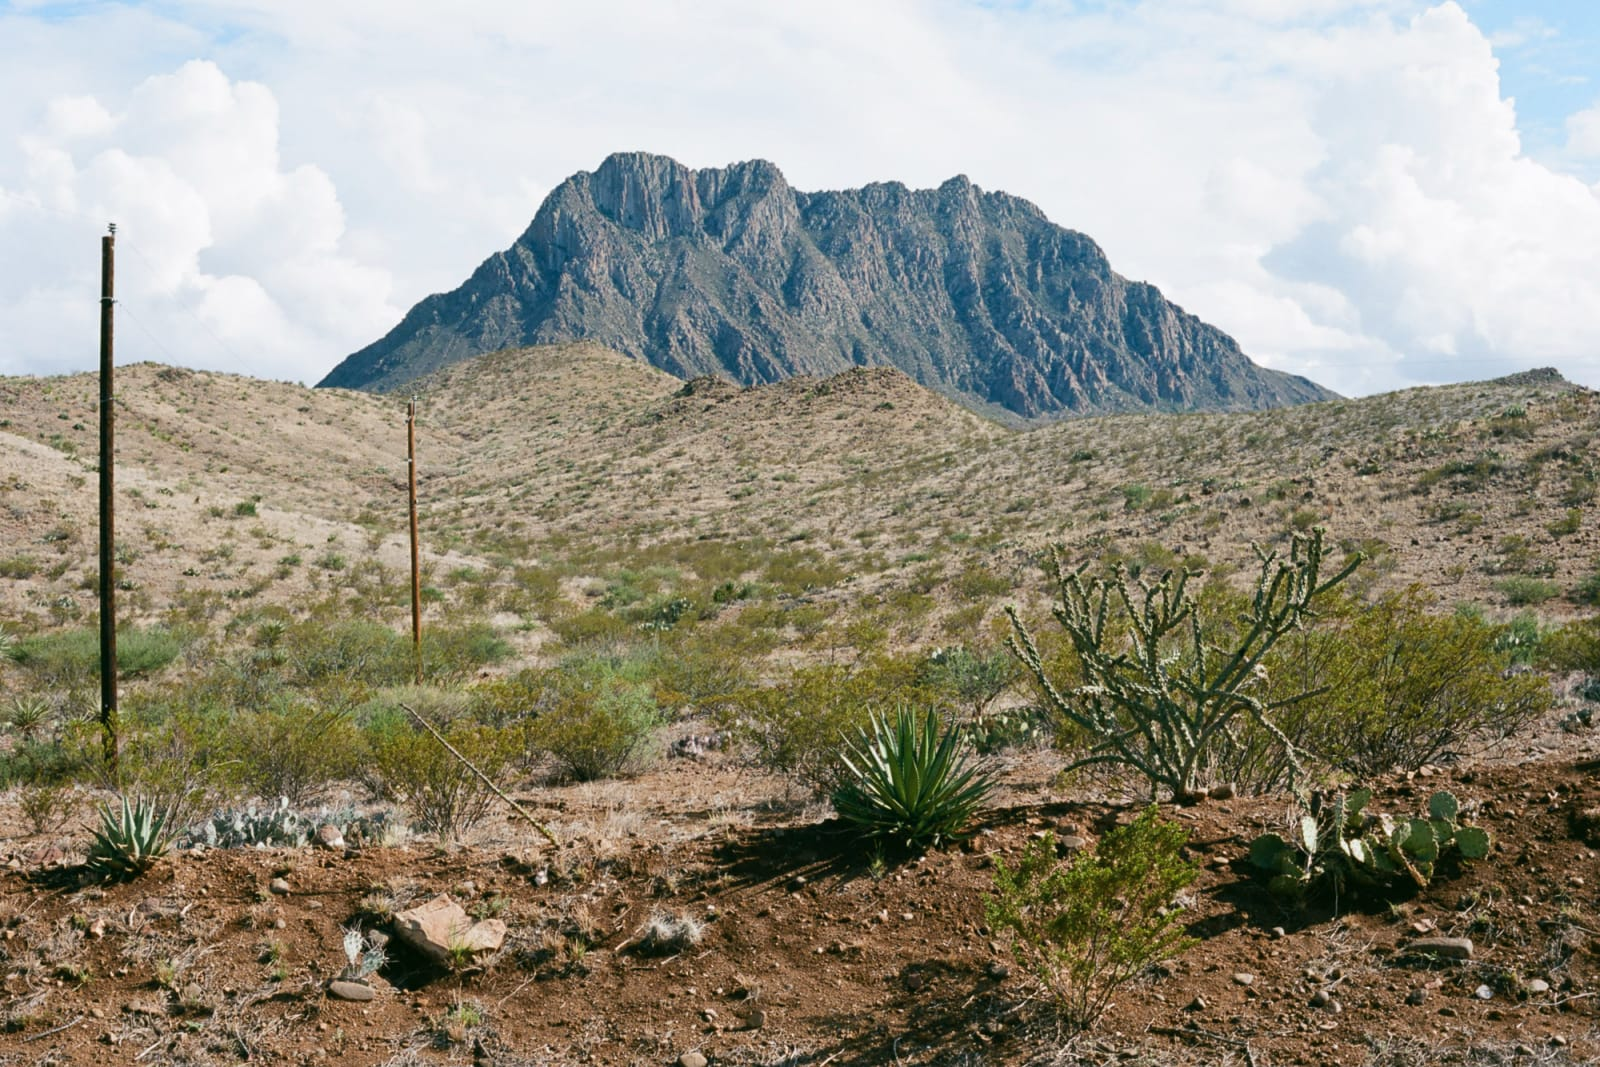 East Corazon Peak, Terlingua Ranch. I love the scenery around Big Bend NP area. Perfect place for getaway.